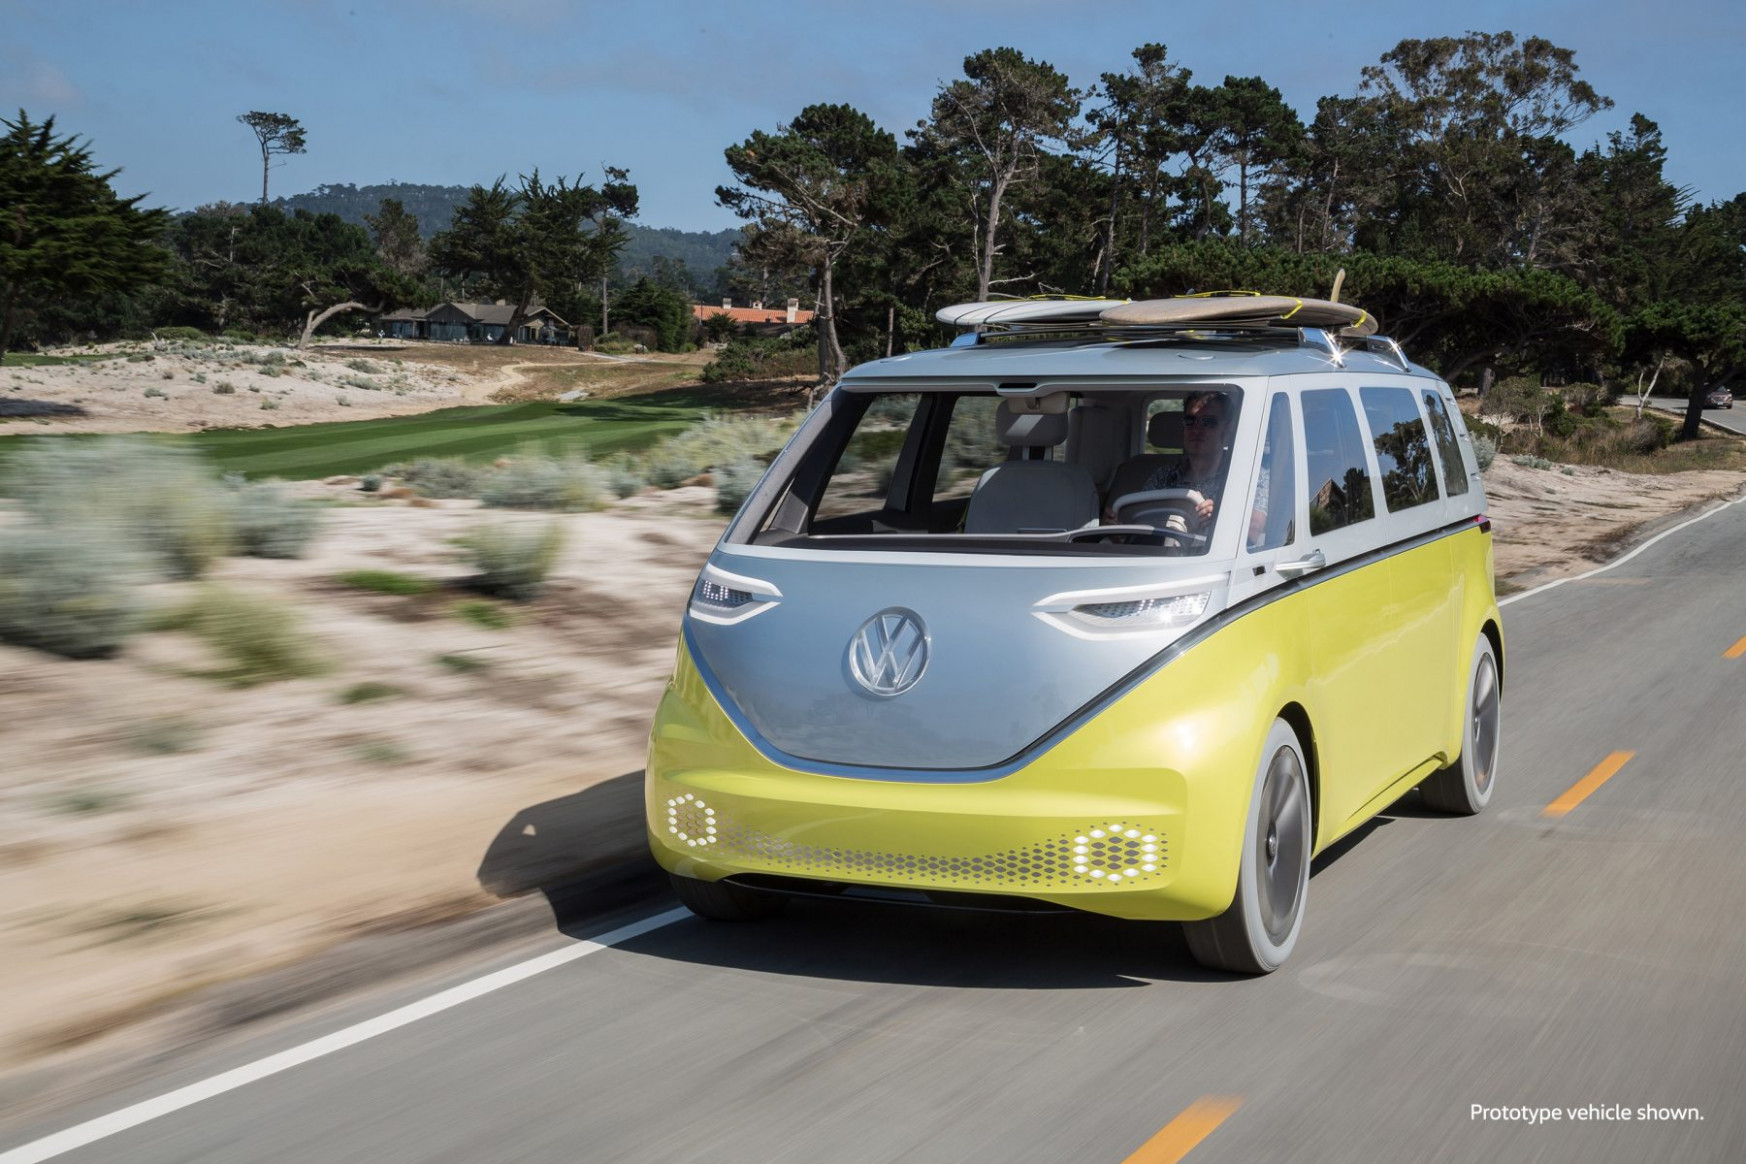 What We Know About the New VW Electric Van - Volkswagen ID BUZZ